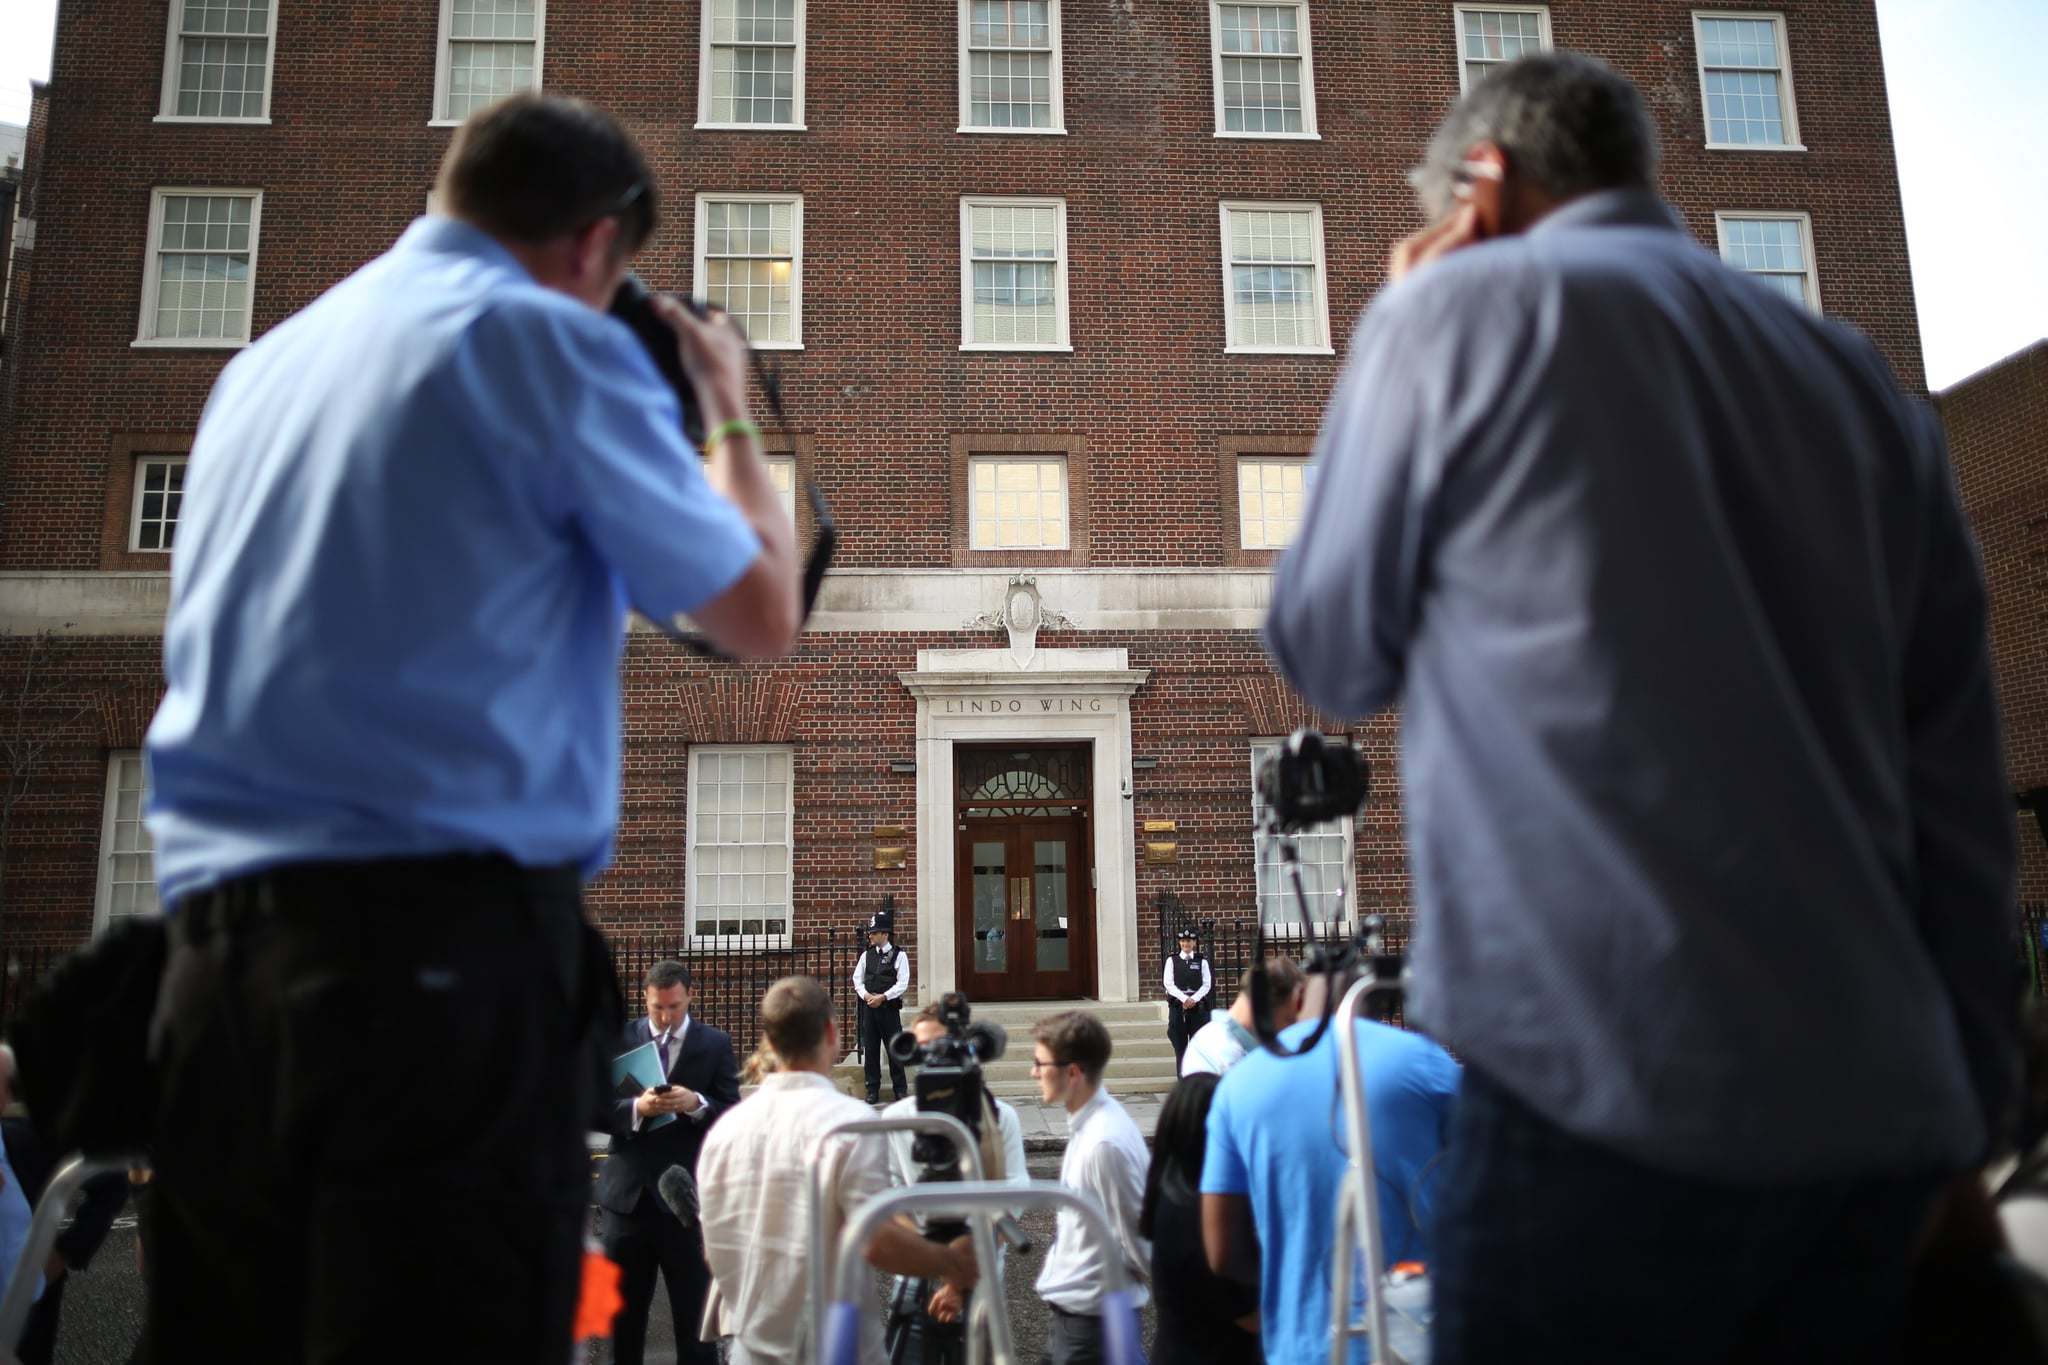 Tourists flocked outside St. Mary's Hospital after the labor was announced.